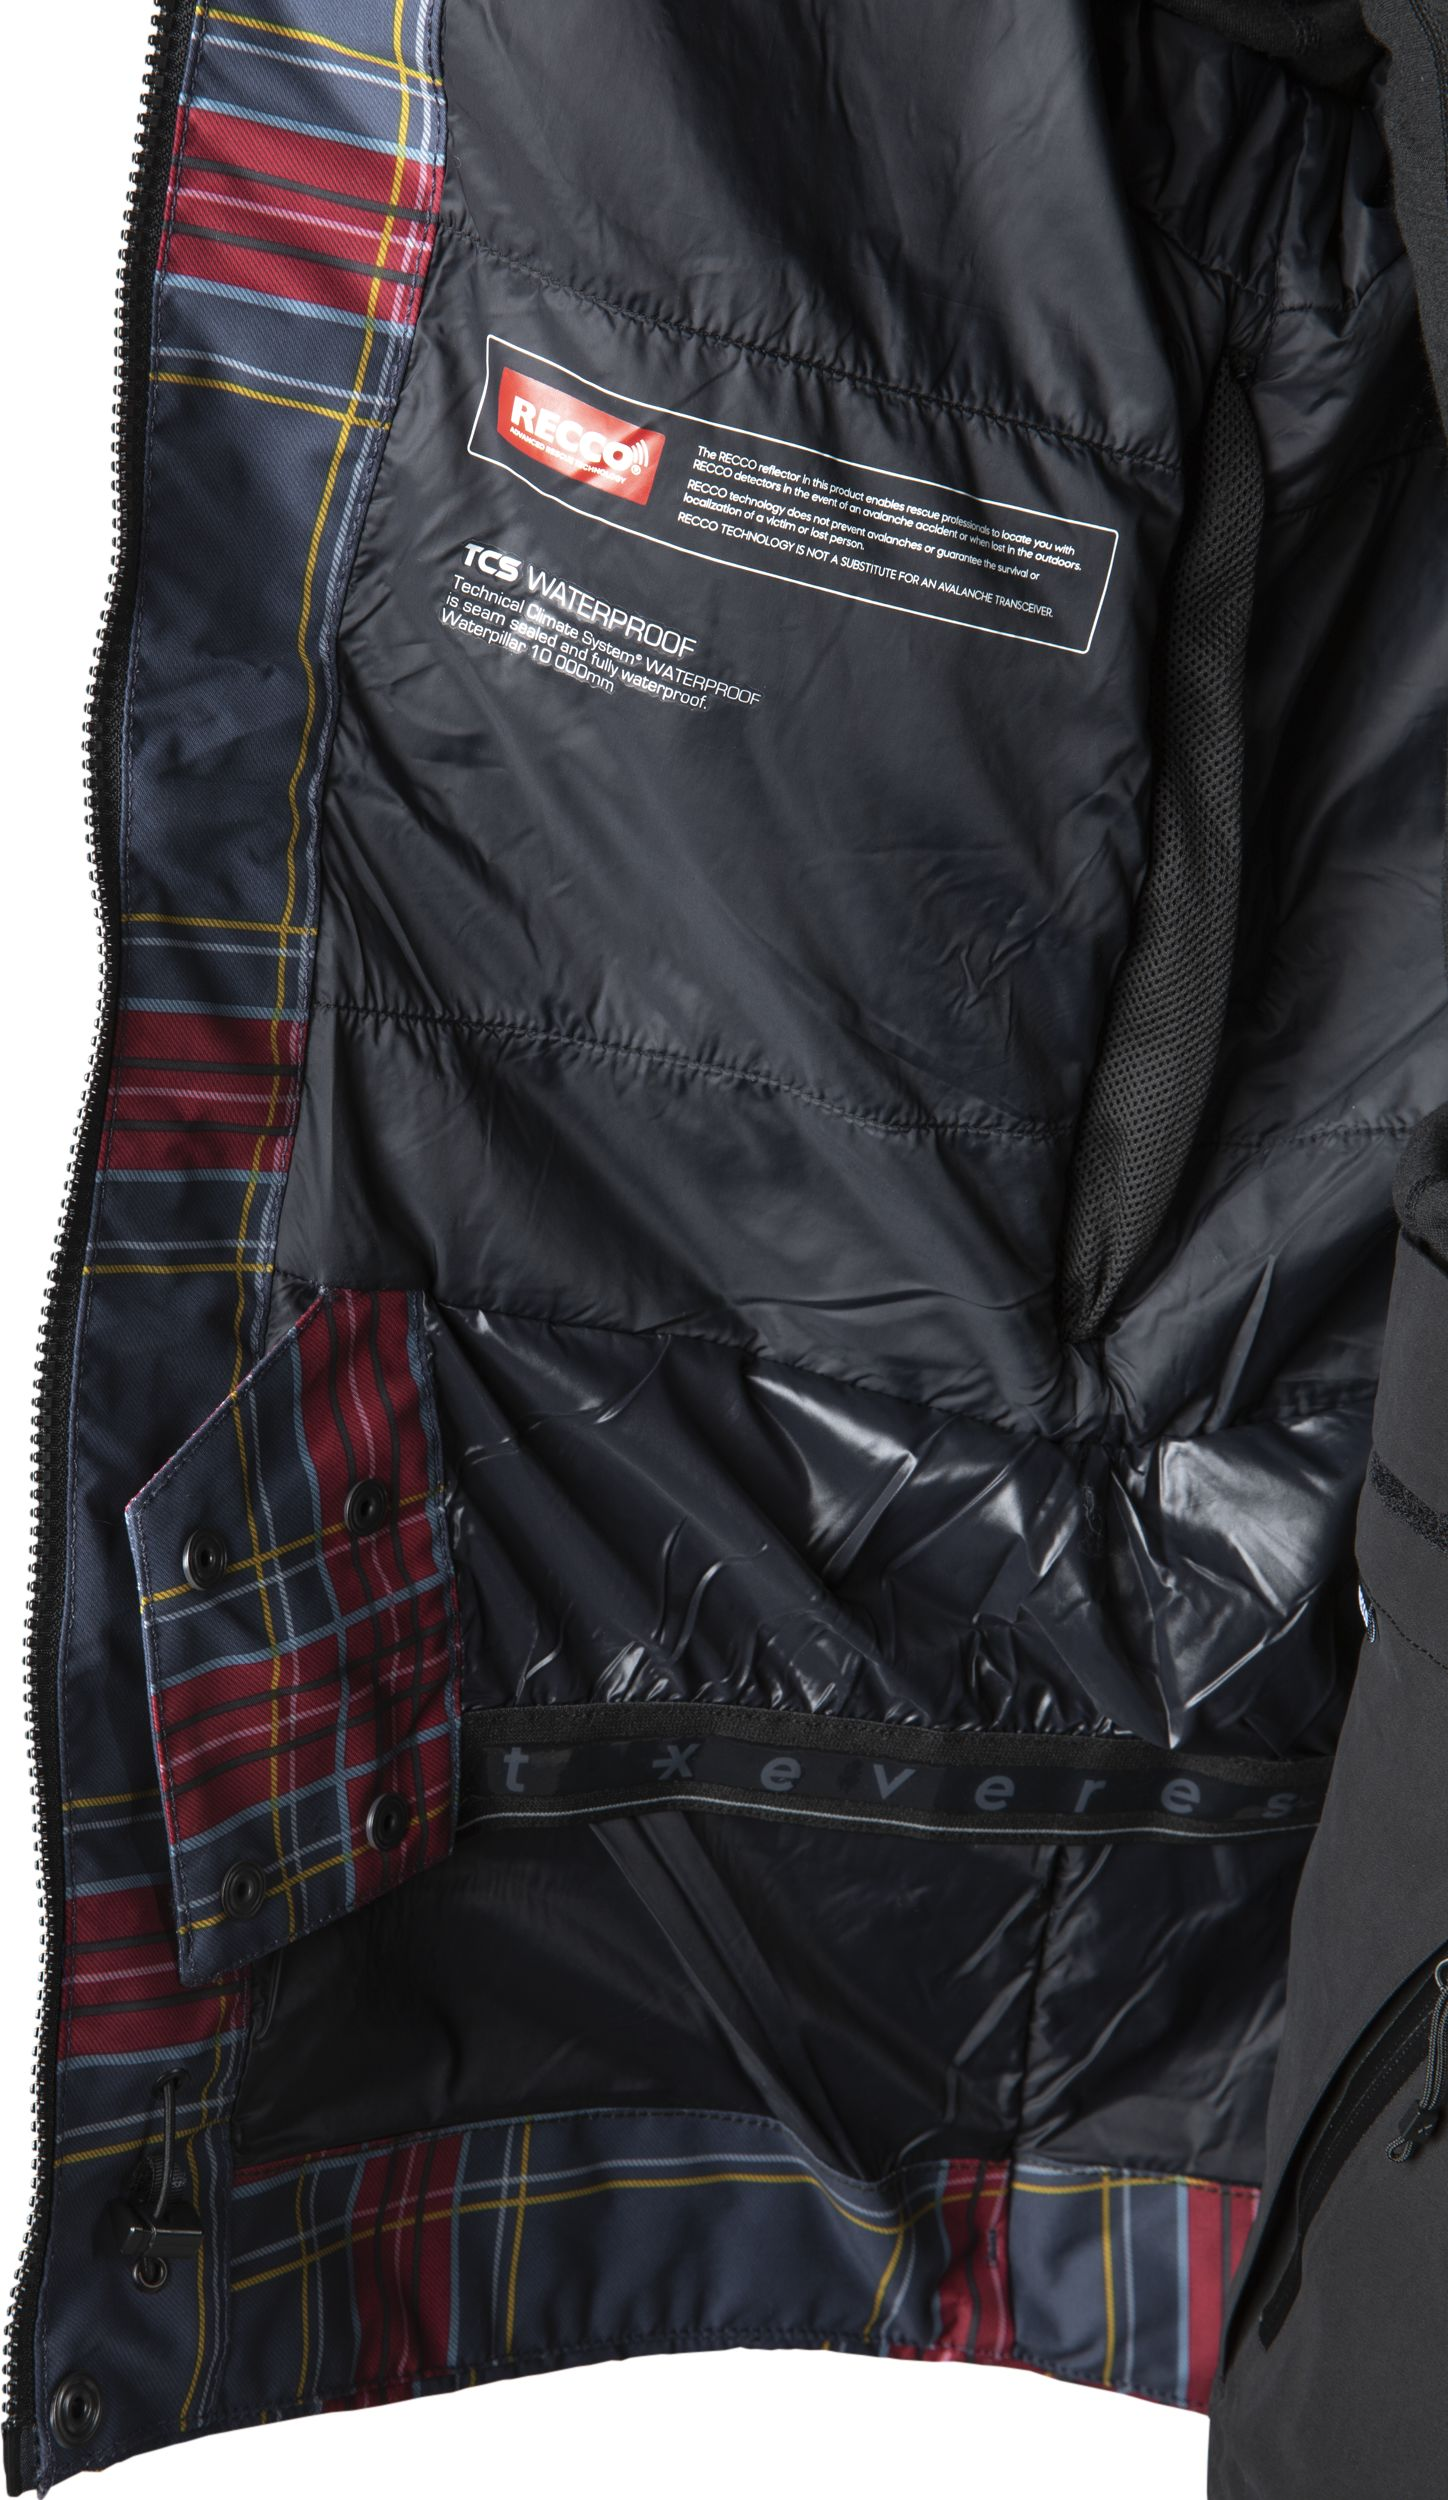 265649105101, W TERRAIN JACKET, EVEREST, Detail